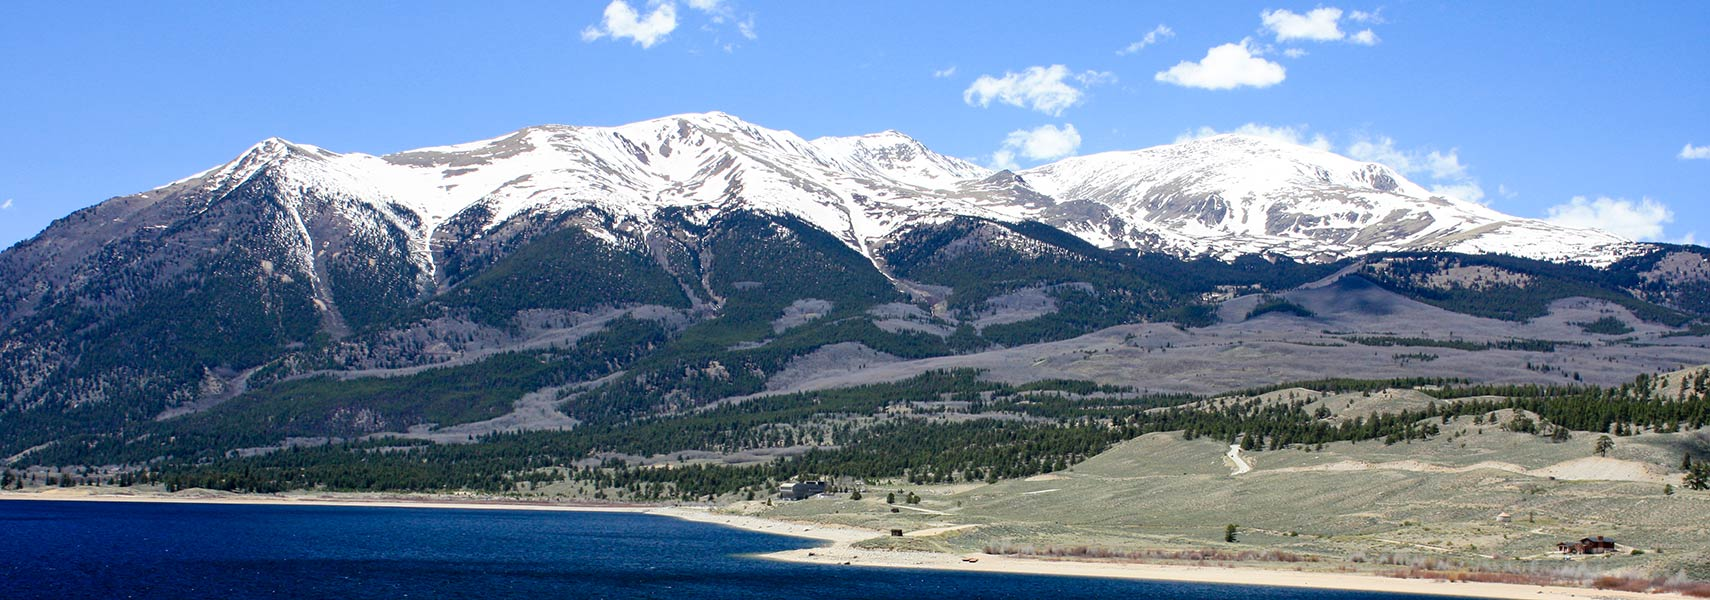 Mount Elbert and Twin Lakes, Sawatch Range, Colorado